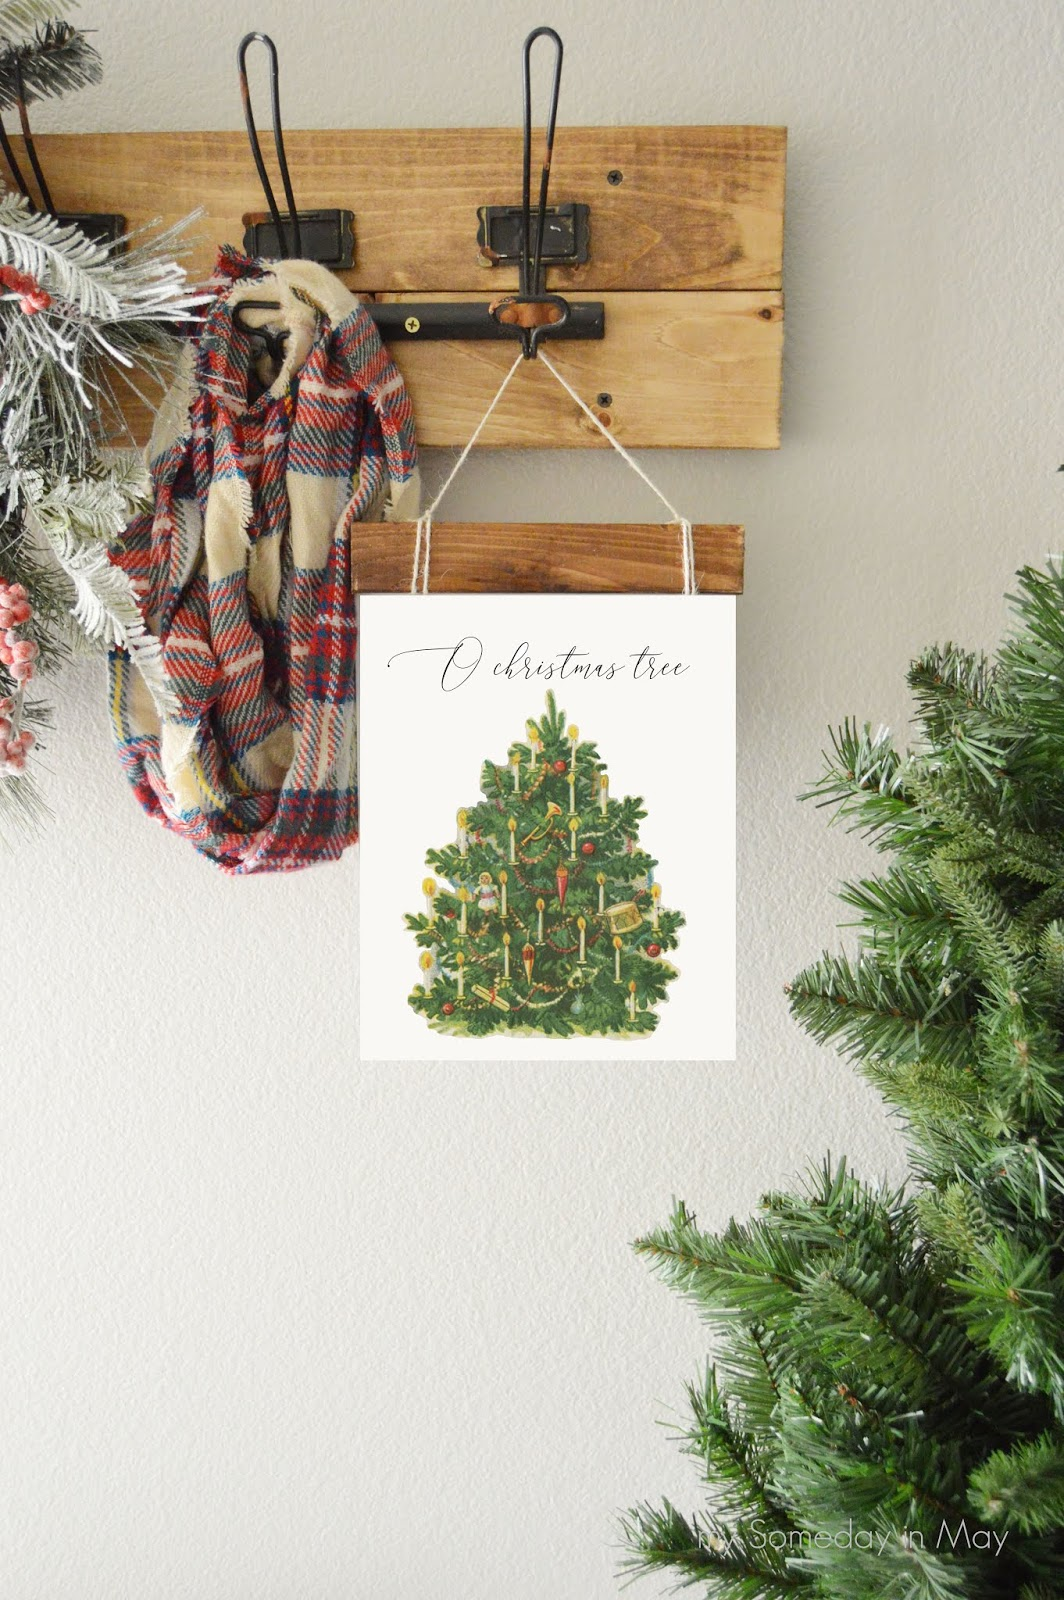 O Christmas Tree Print - My Someday in May